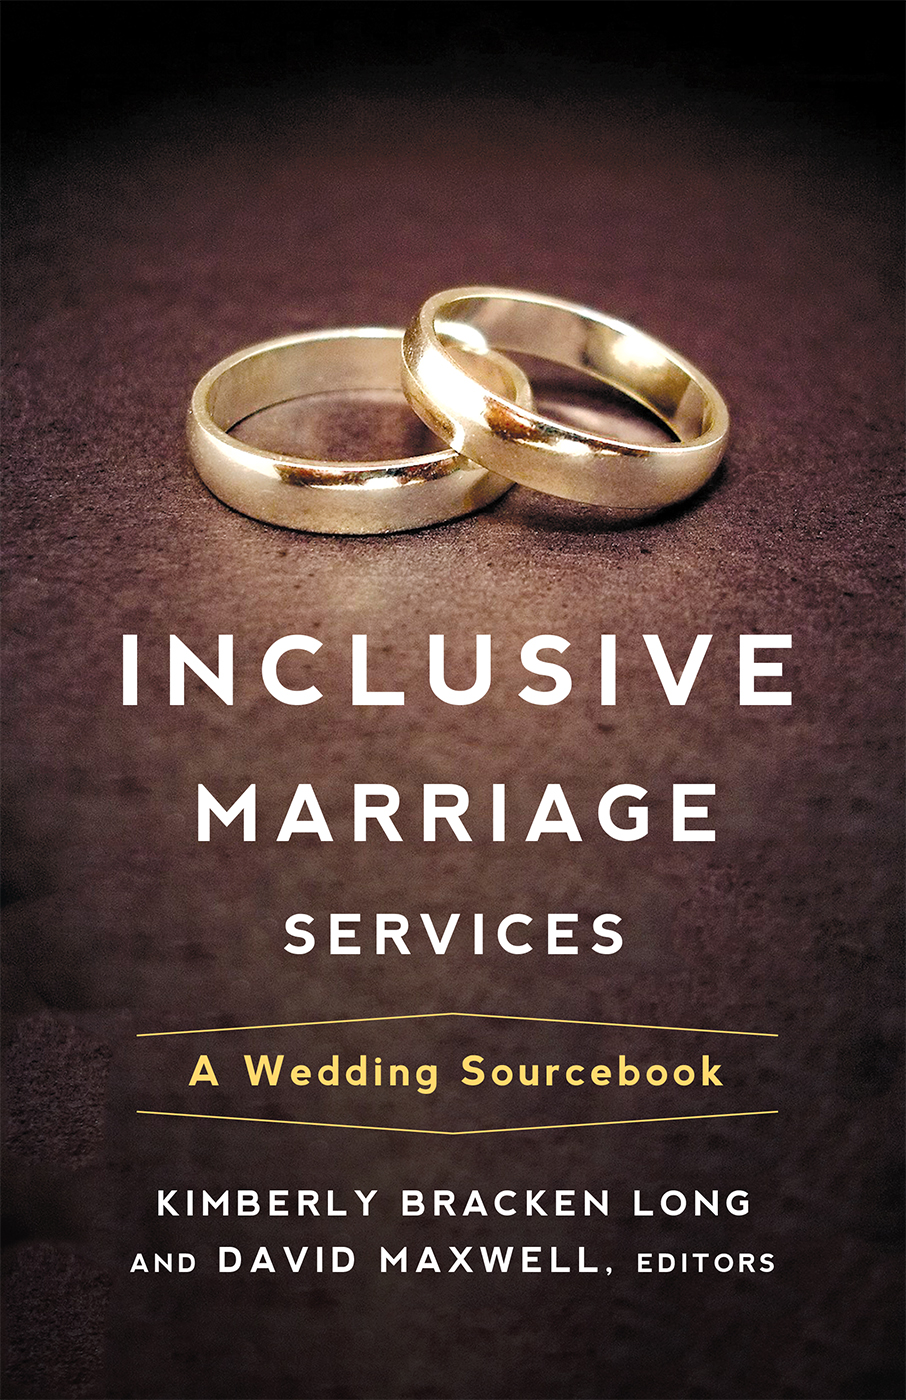 Inclusive Marriage Services